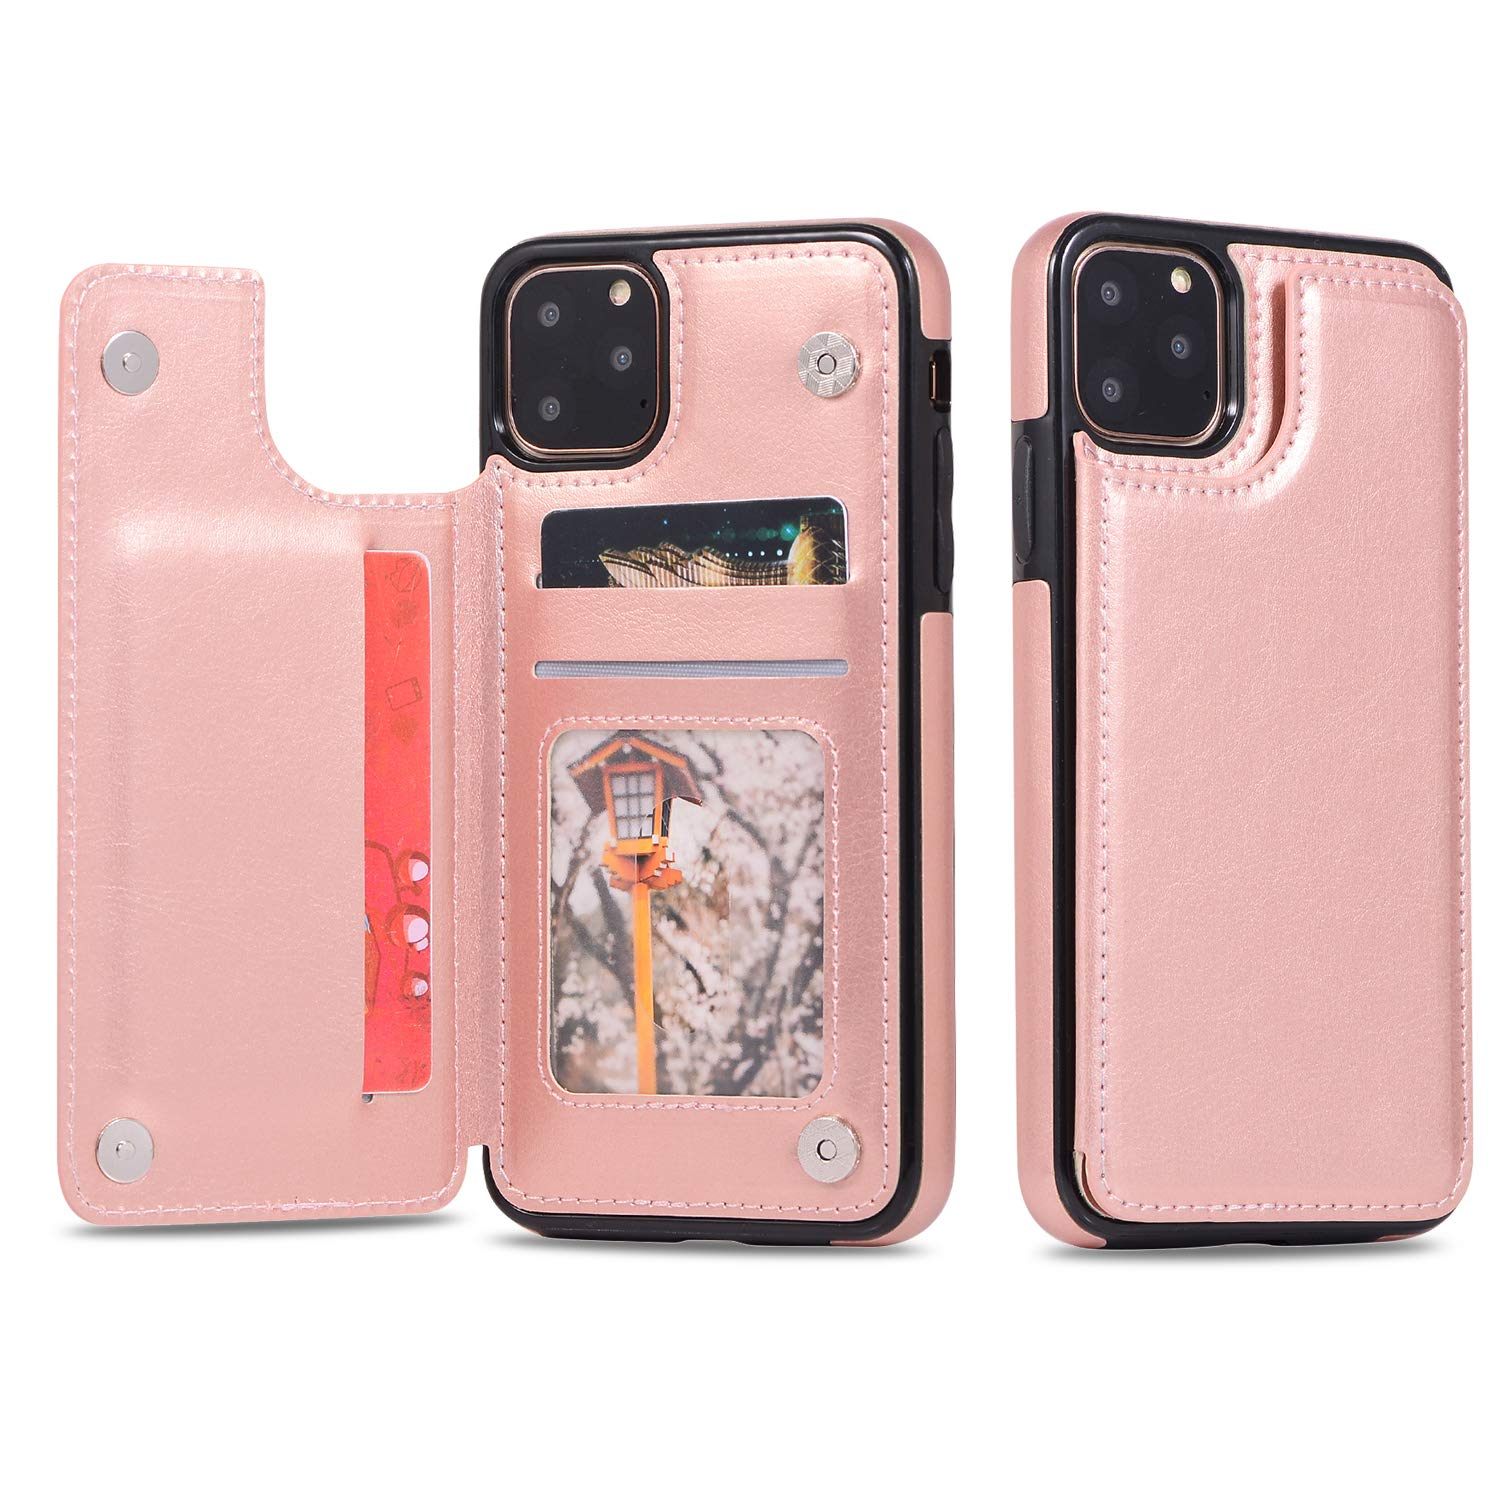 SAVYOU iPhone 11 Pro Wallet Case with Credit Card Holder, PU Leather Kickstand Magnetic Clasp Durable Shockproof Protective Flip Cover for iPhone 11 Pro 5.8Inch 2019 (Rose Gold)